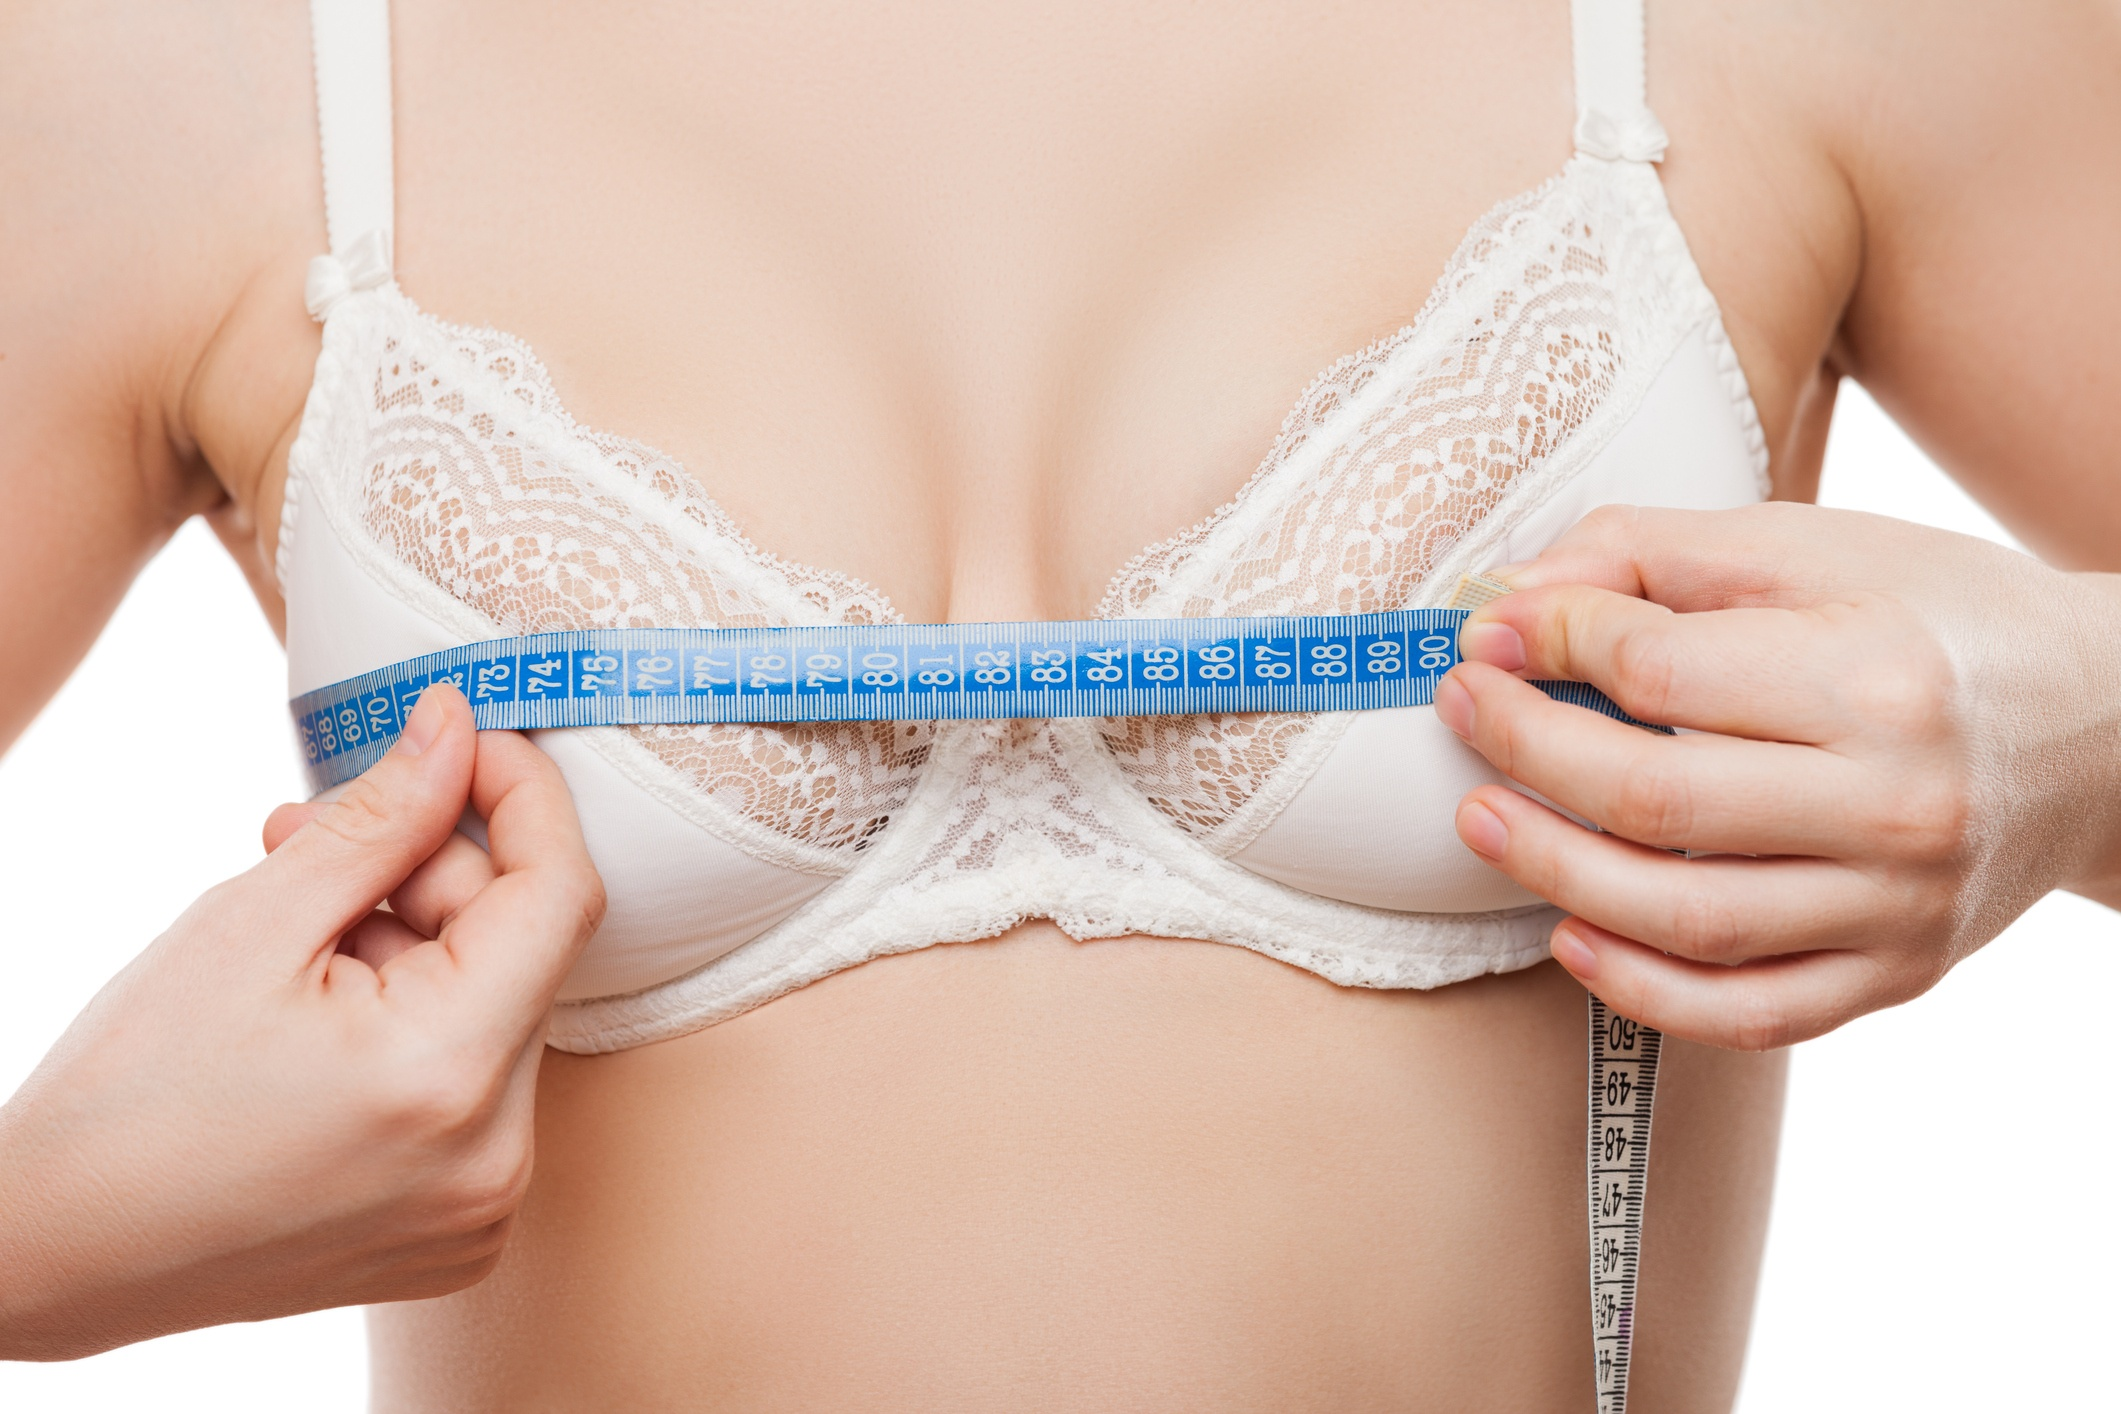 Many Women Have Become Seriously Ill After Undergoing Plastic